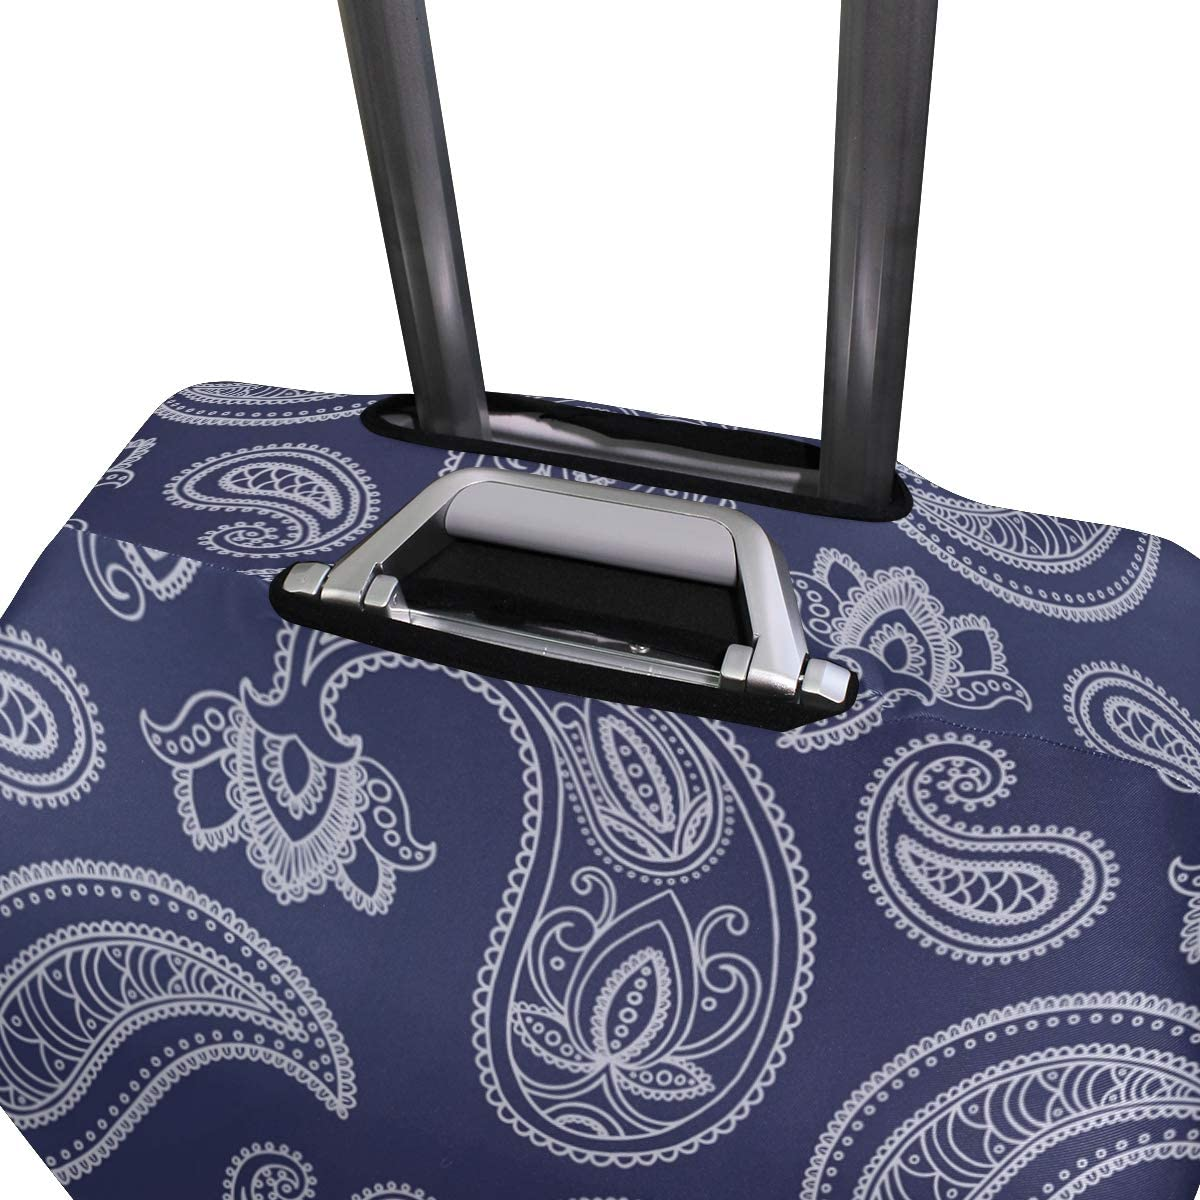 Baggage Covers Blue White Paisley Pattern Washable Protective Case